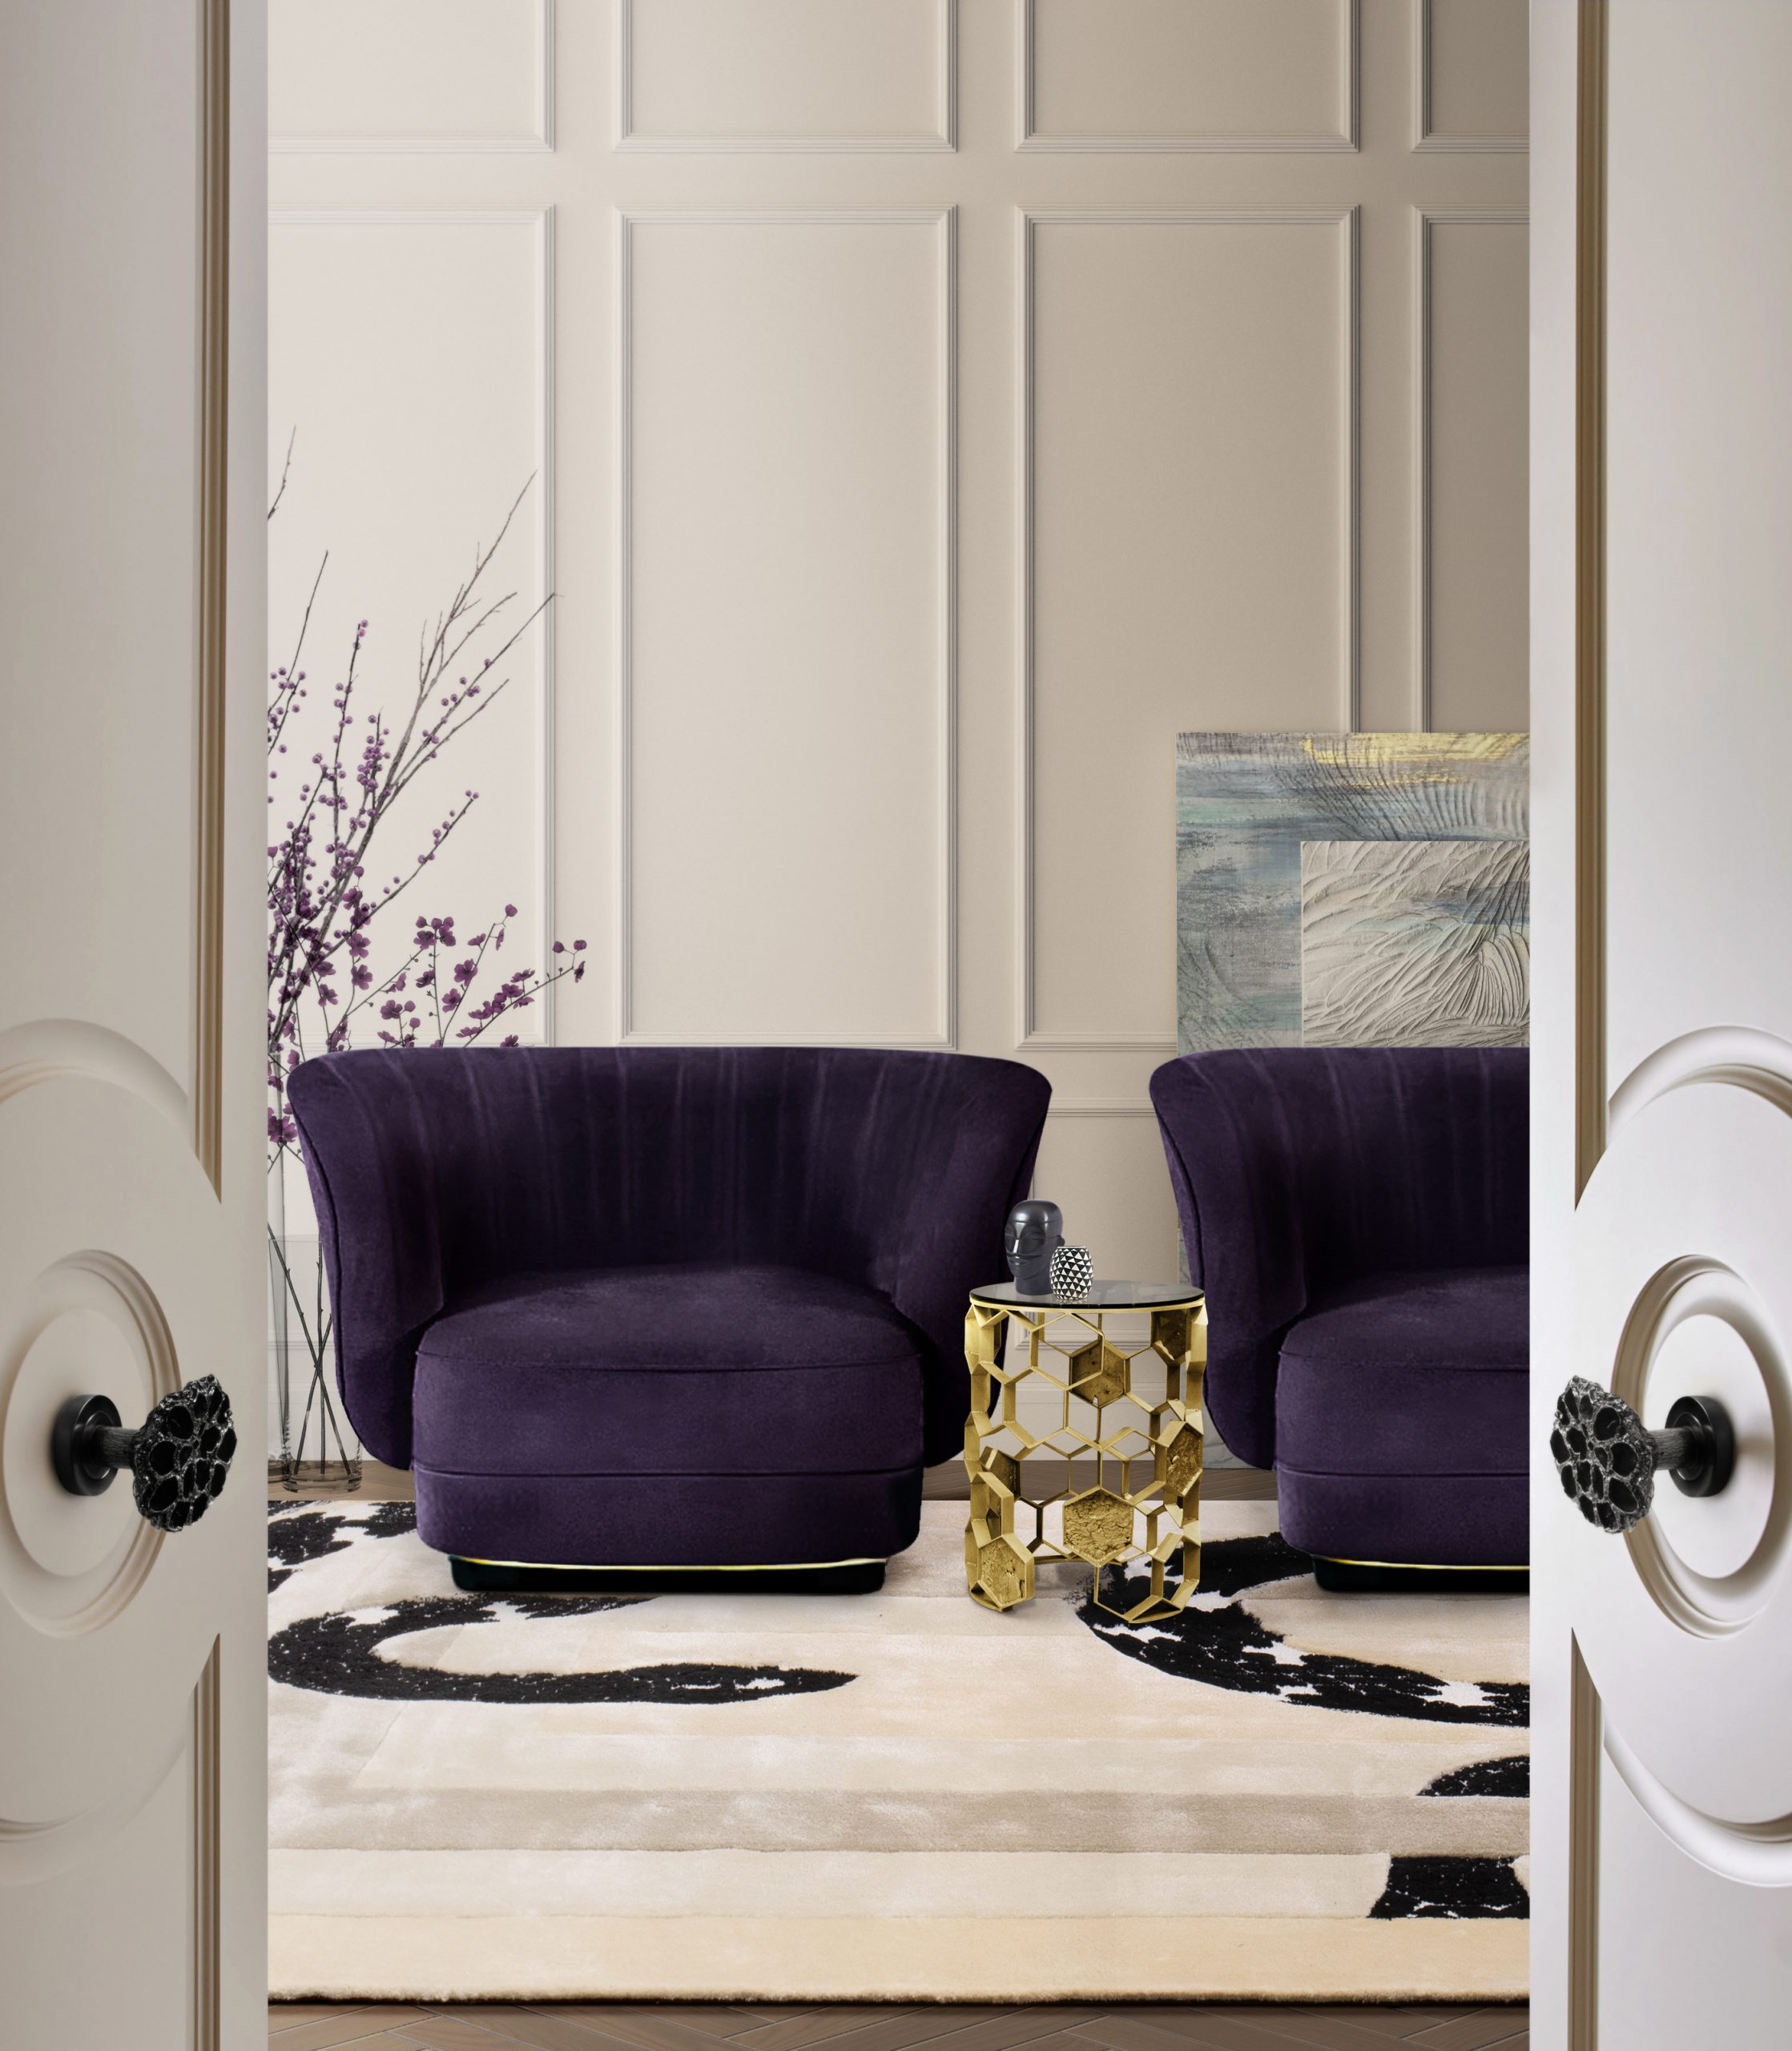 Hotel Lobbies and Waiting Spaces: A List Of 20 Modern Armchairs  modern armchairs Hotel Lobbies And Waiting Spaces: A List Of 20 Modern Armchairs Hotel Lobbies and Waiting Spaces A List Of 20 Modern Armchairs 17 scaled